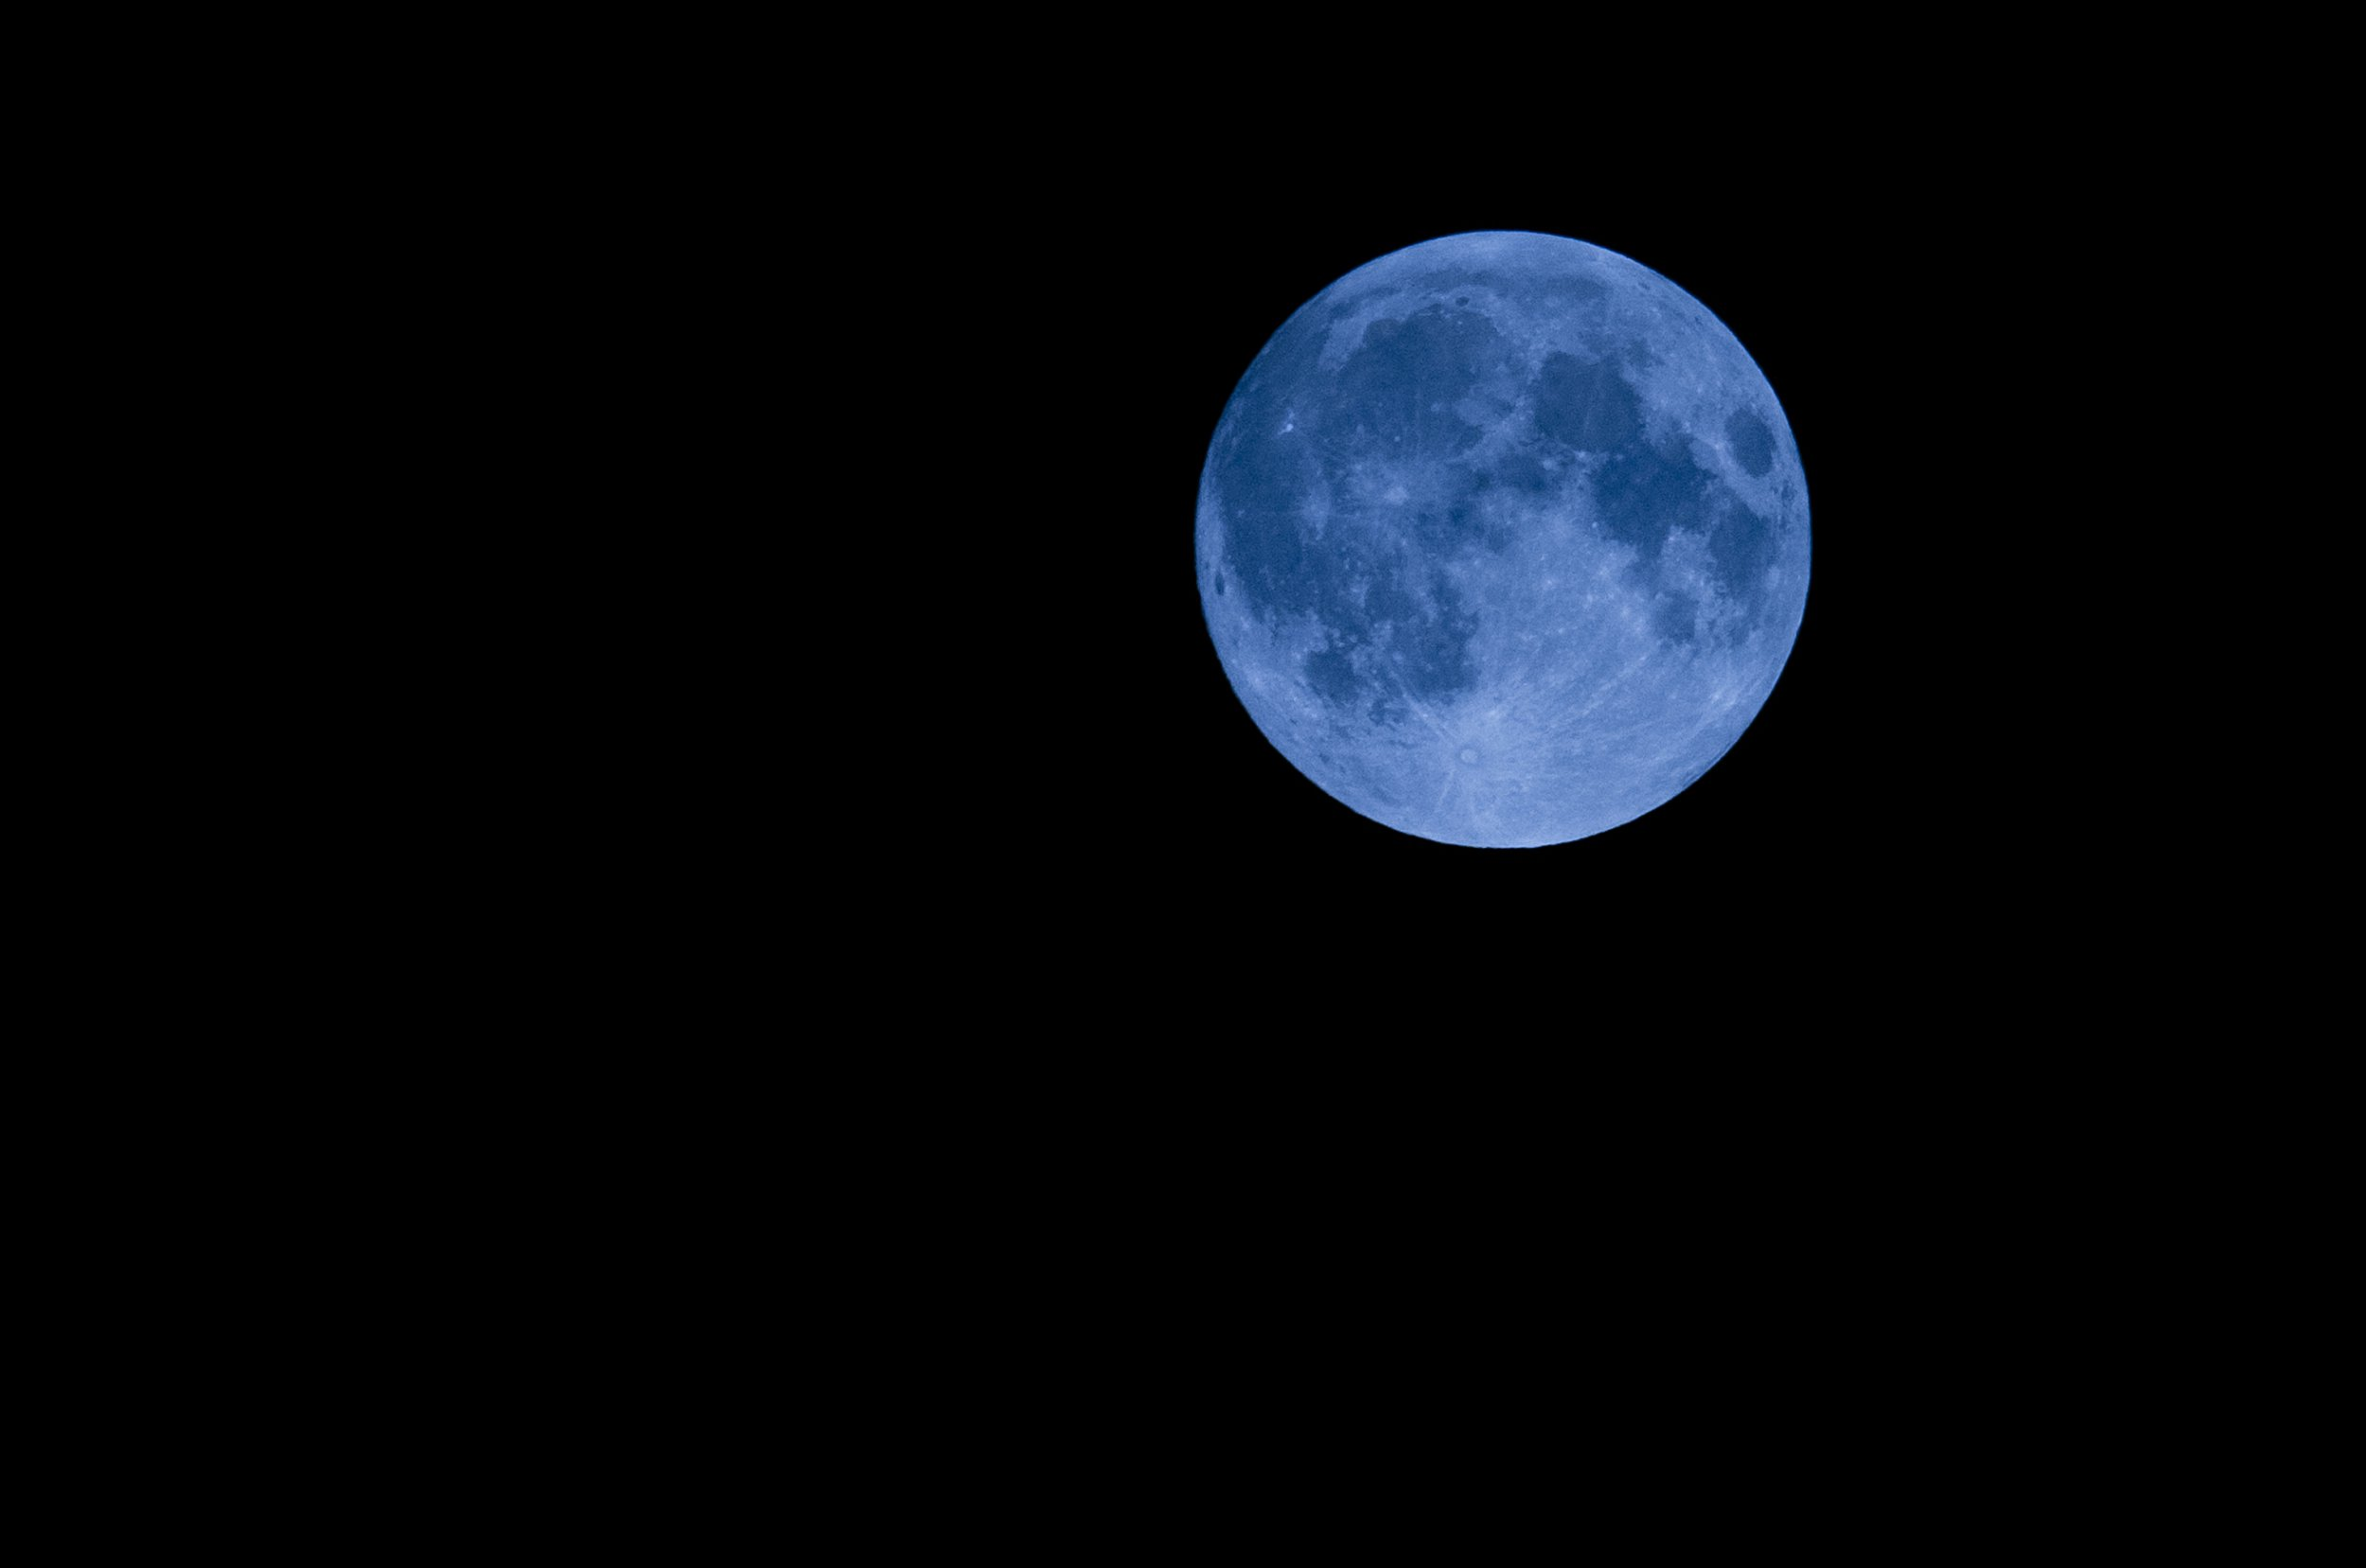 It's a blue moon, though it won't demeanour like this (PhotoAlto)